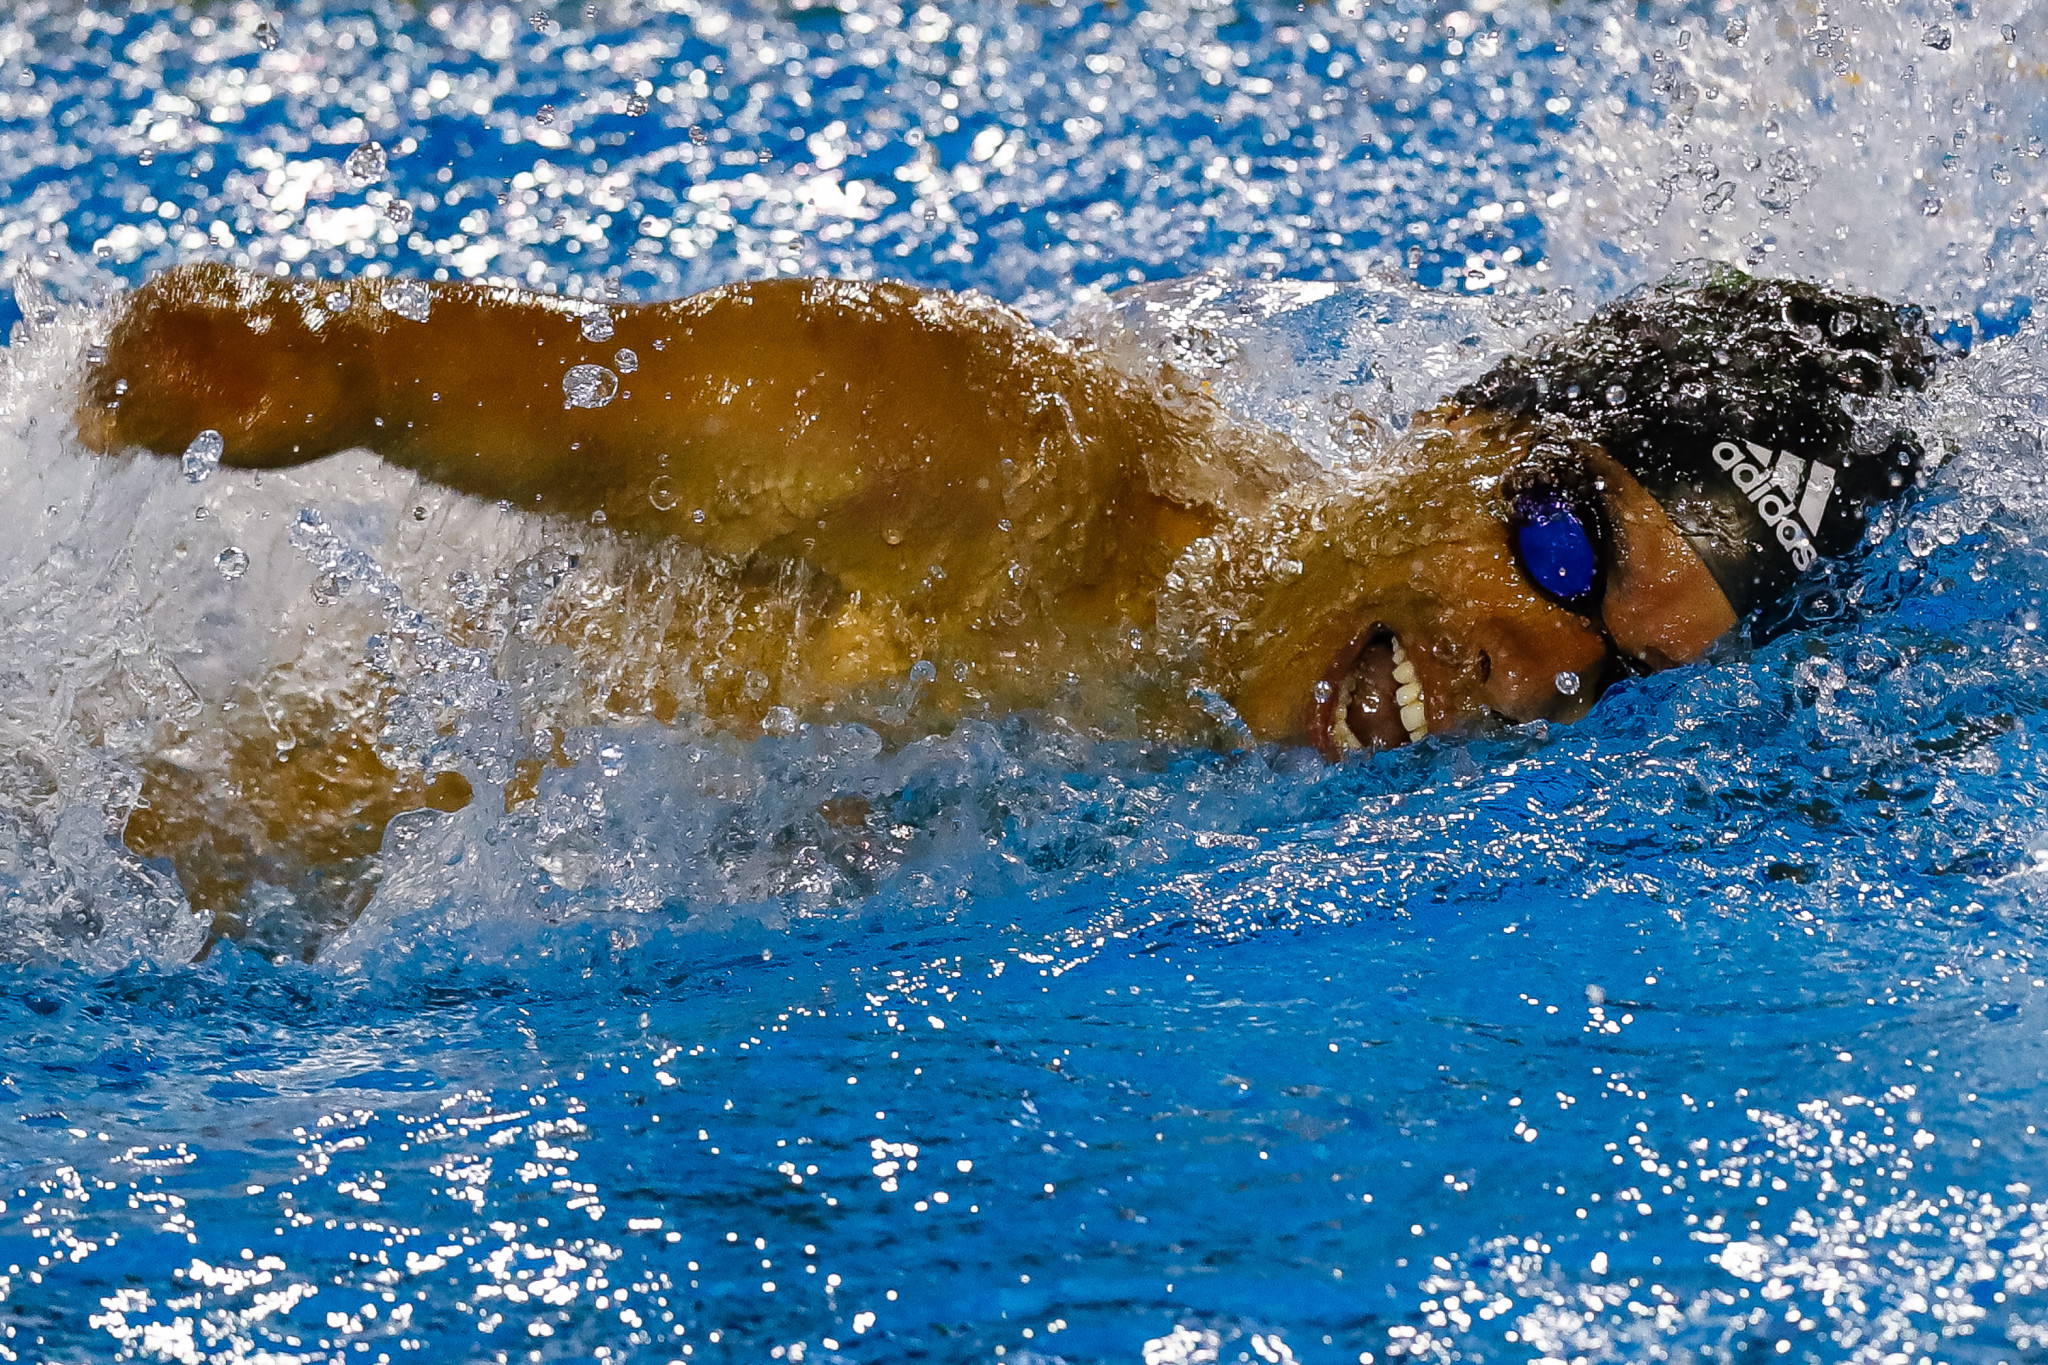 Brazilian Daniel Dias is among the star names due to compete in Mexico City ©Getty Images